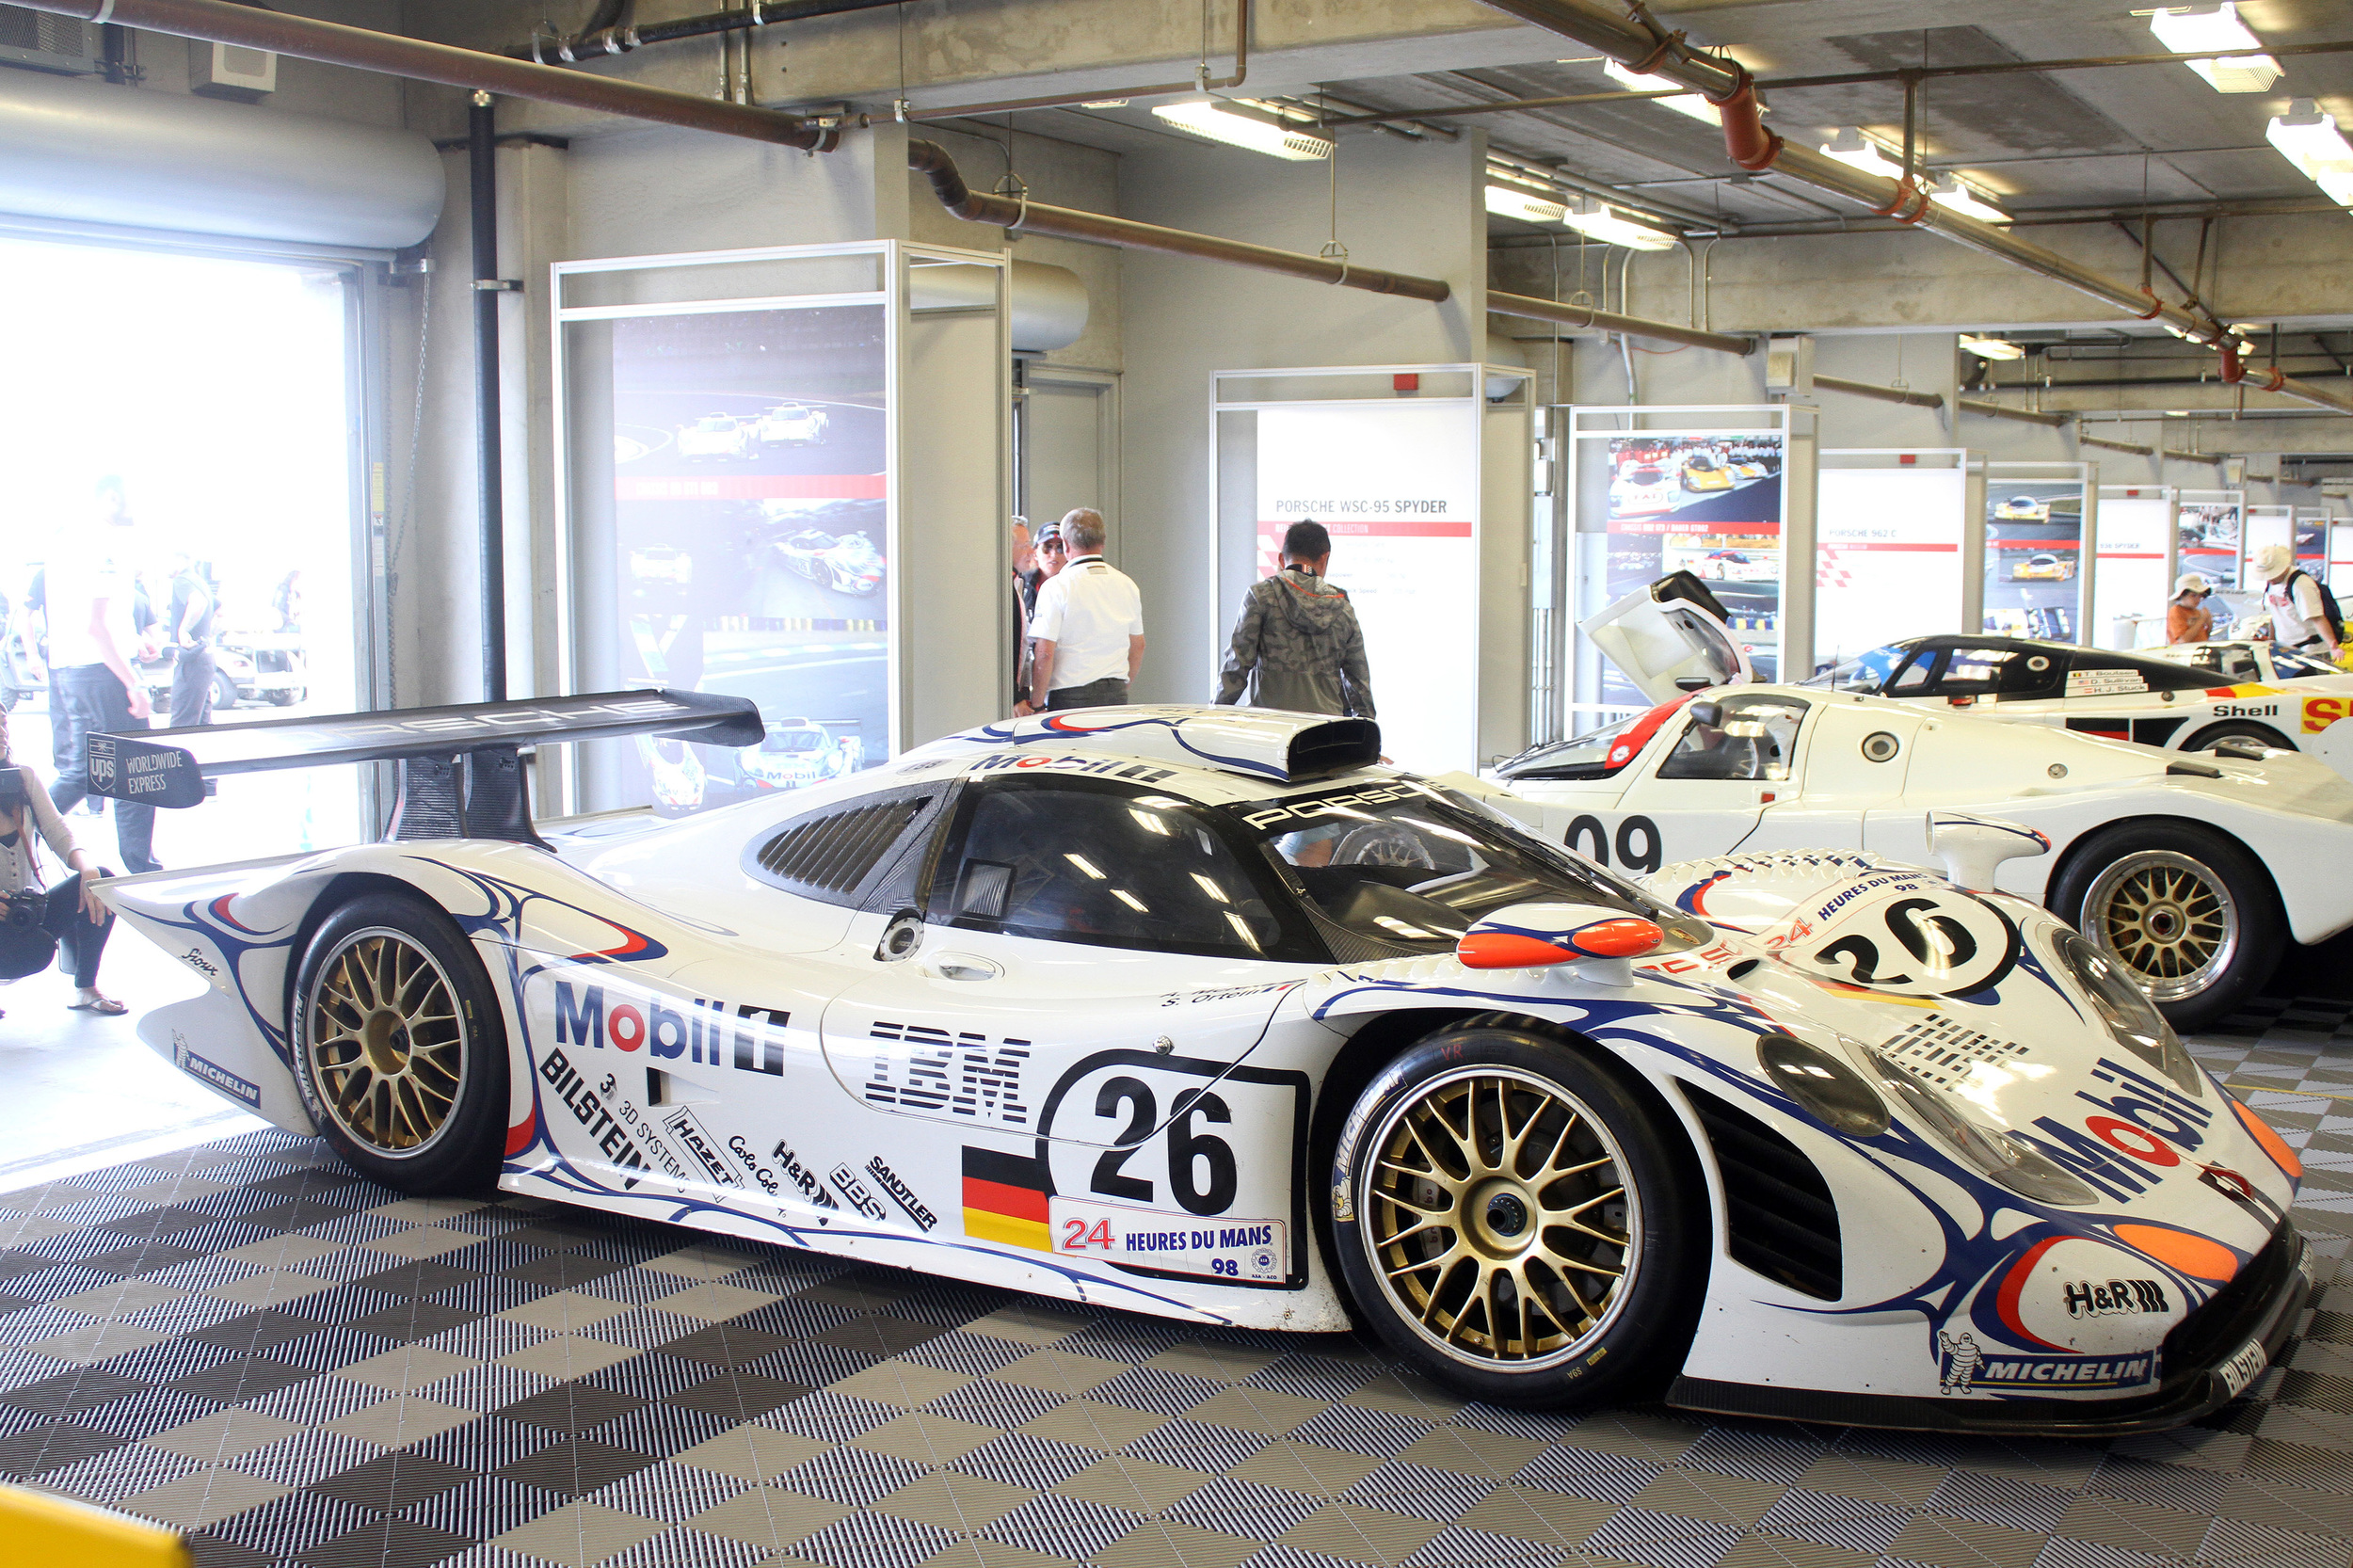 Porsche Le Mans Cars Photo Gallery - Autoblog